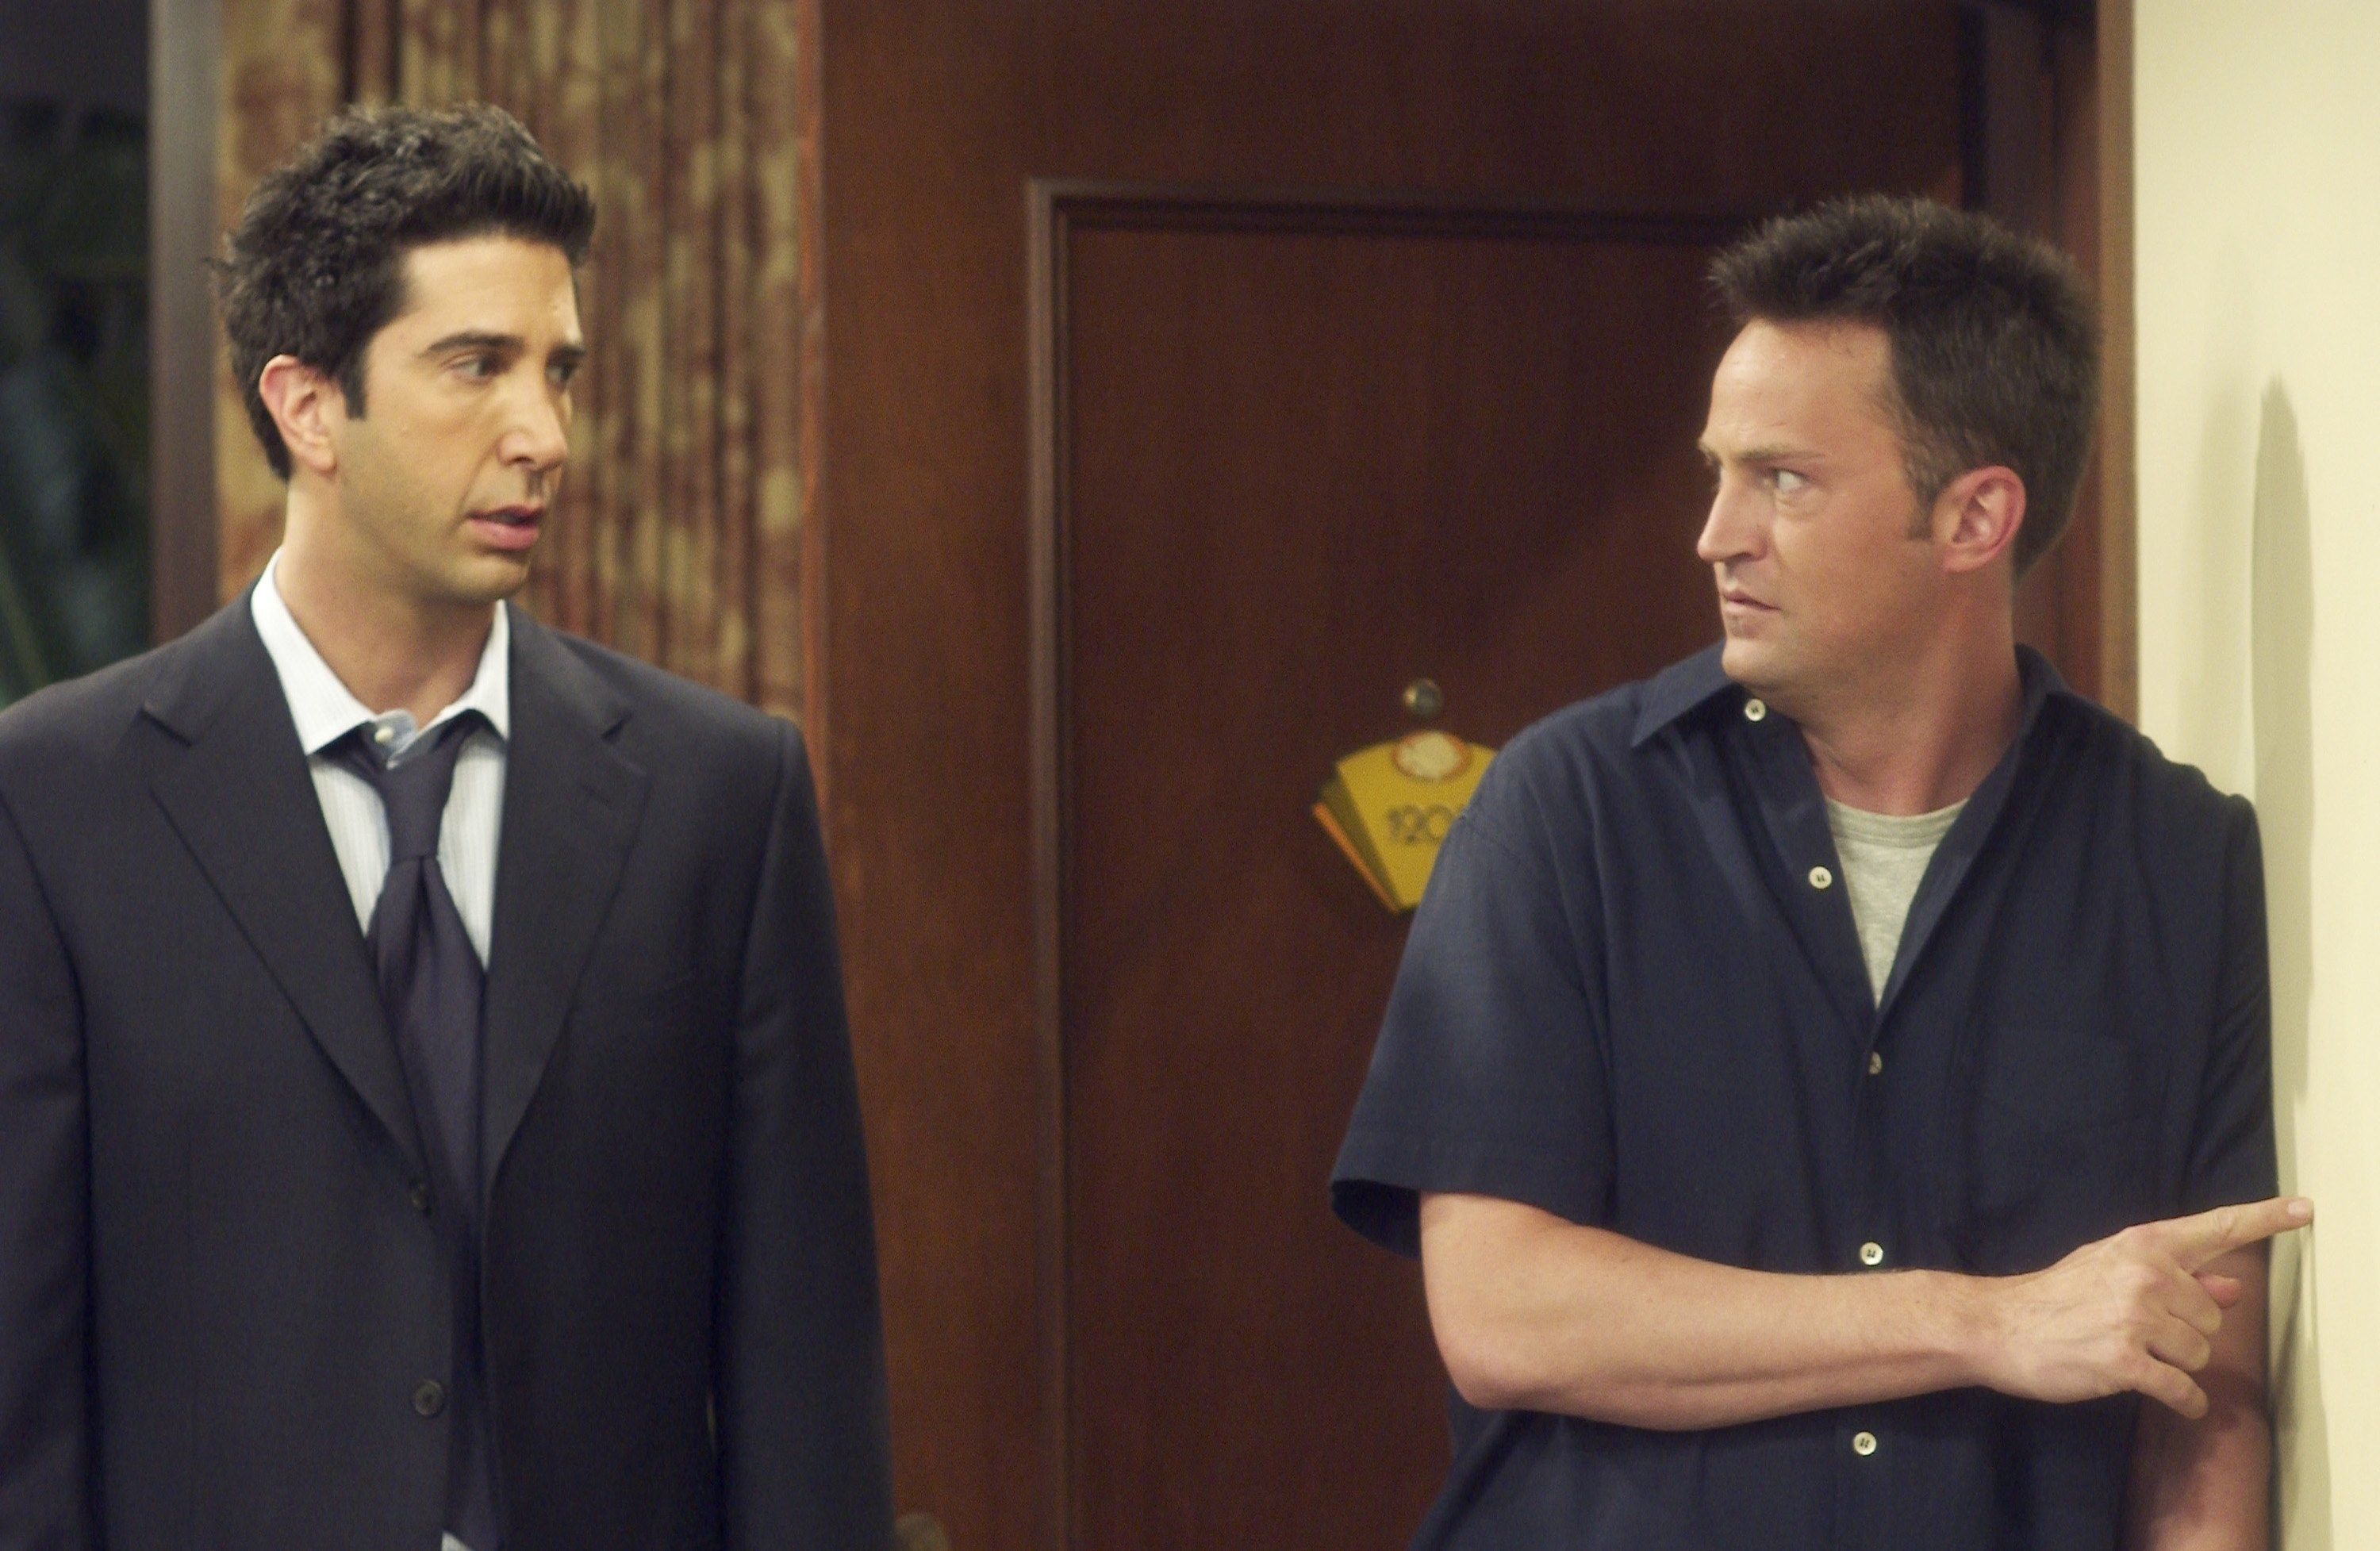 Ross looks upset while looking at Chandler